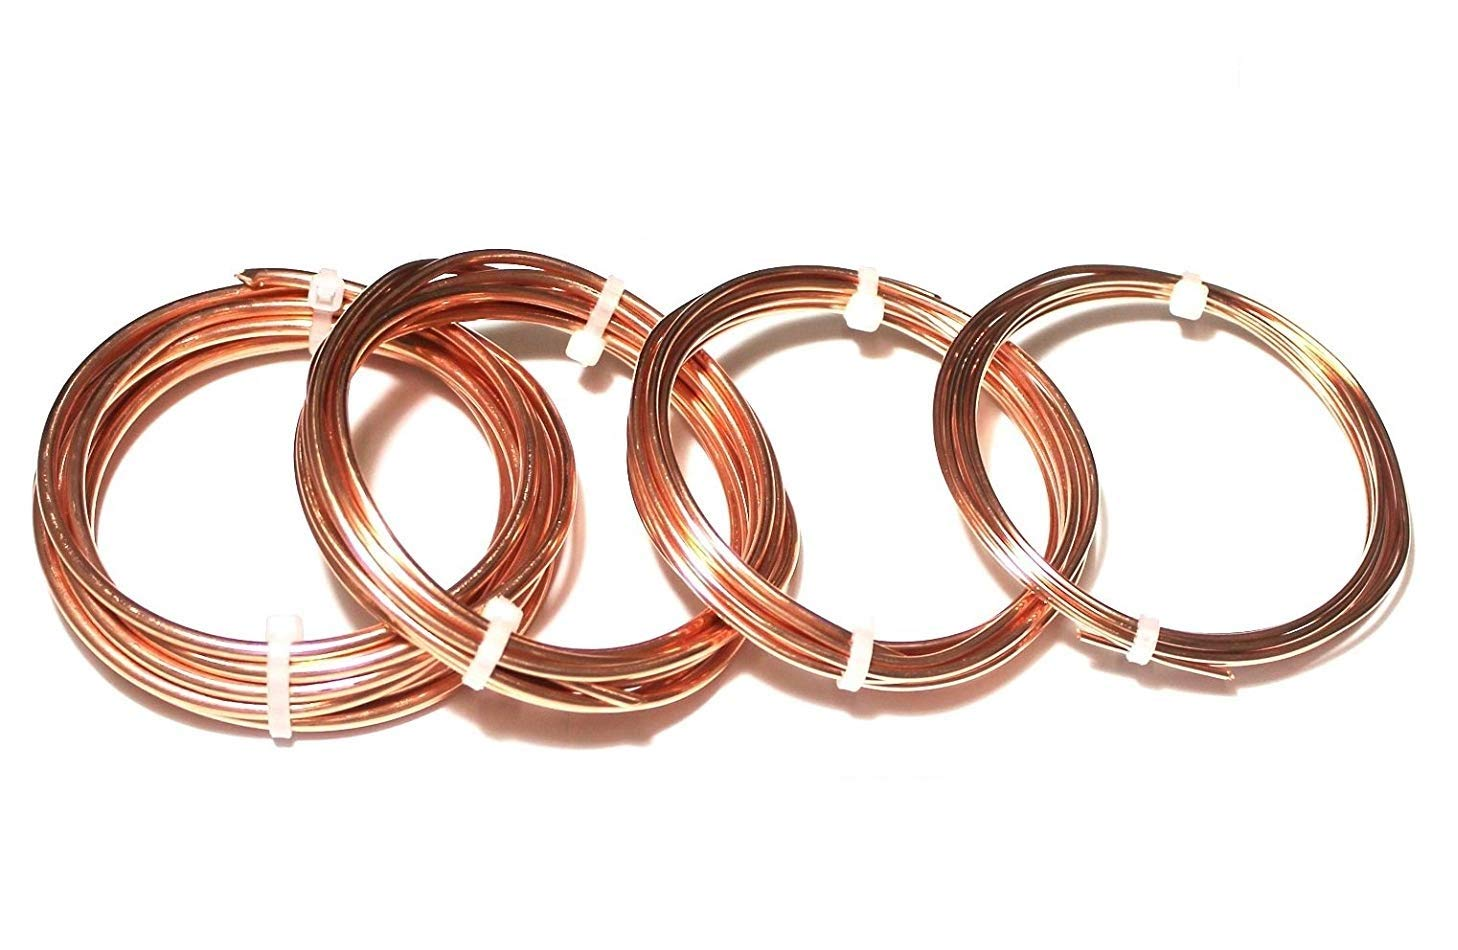 Copper Wire Dead Soft 10,12,14,16 Ga - 4 Assorted Sizes 5 Ft. Each by Copper wire USA